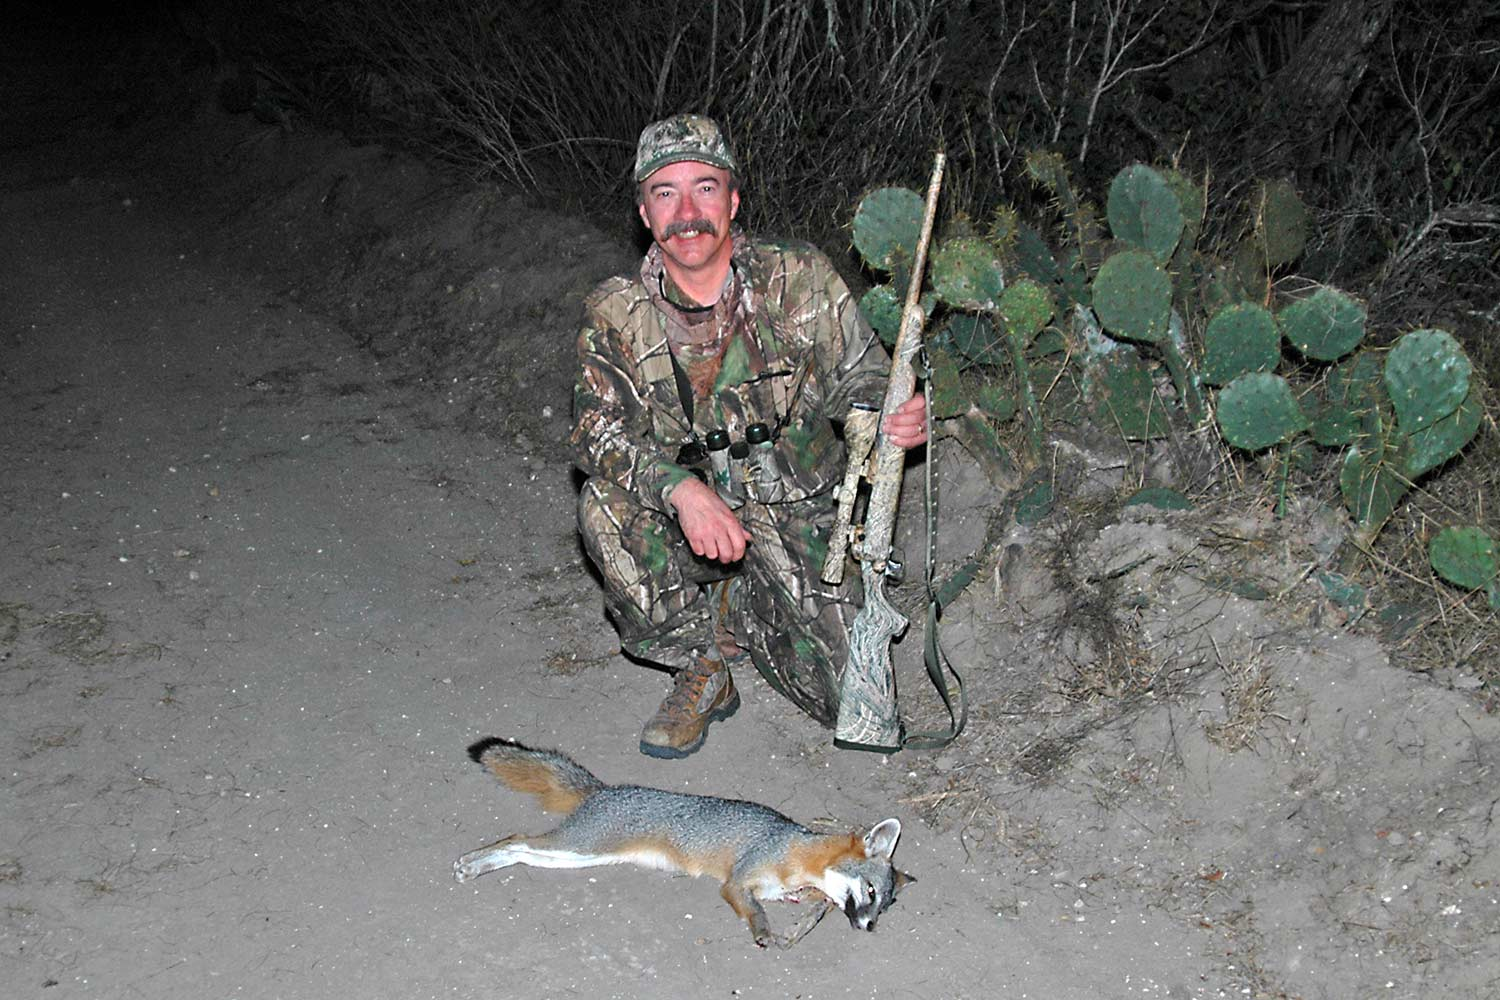 Mike Dickerson collected this gray fox in Texas using a Savage rifle chambered for the round.